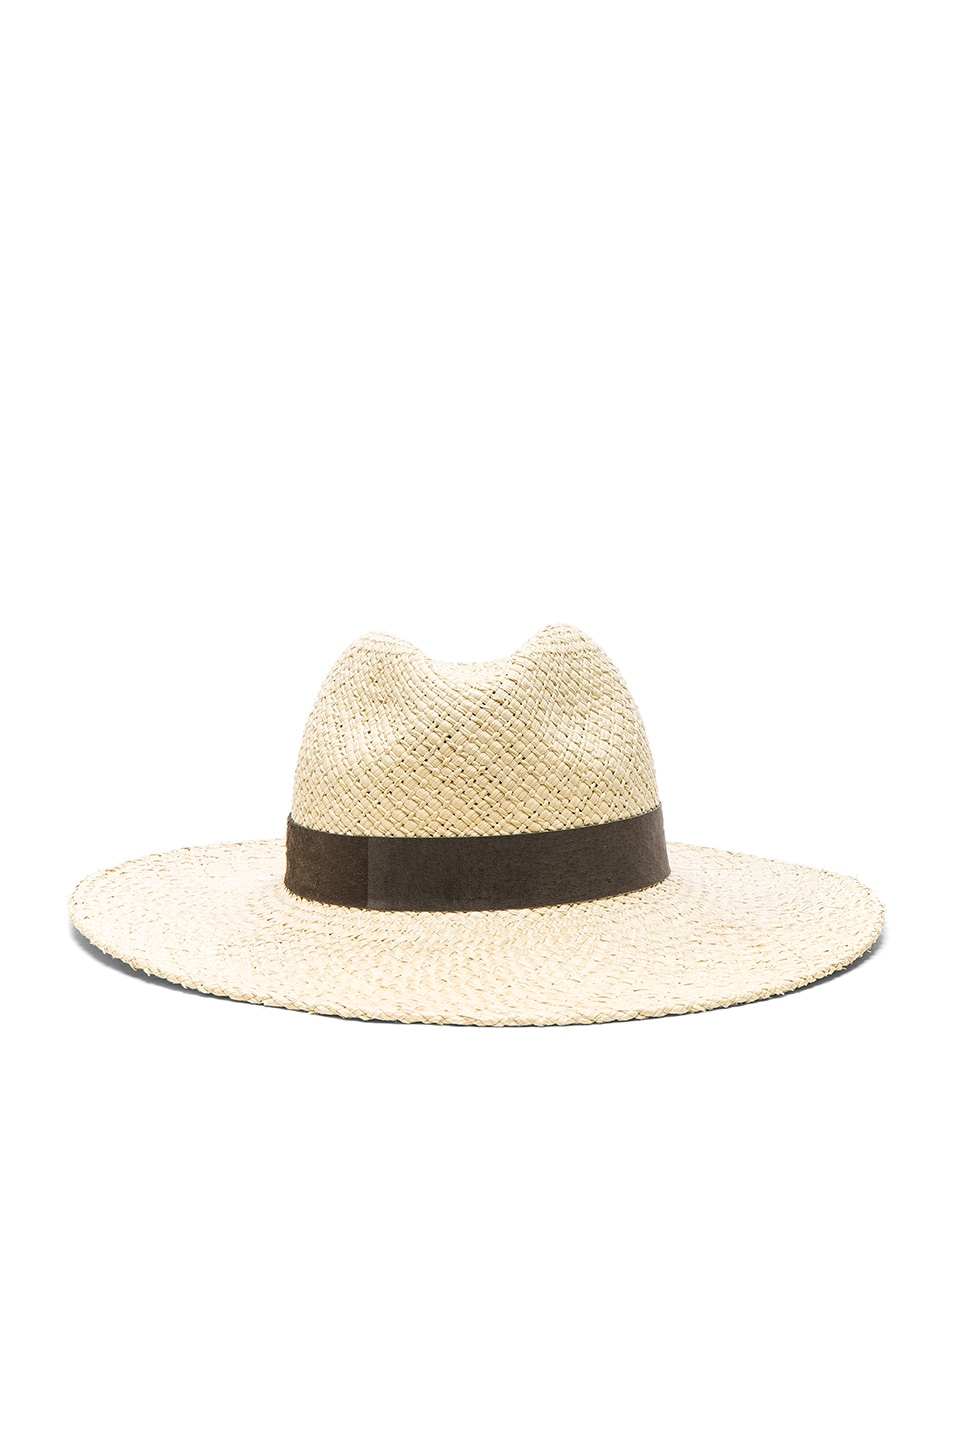 Image 1 of Janessa Leone Ana Wide Brimmed Panama Hat in Natural